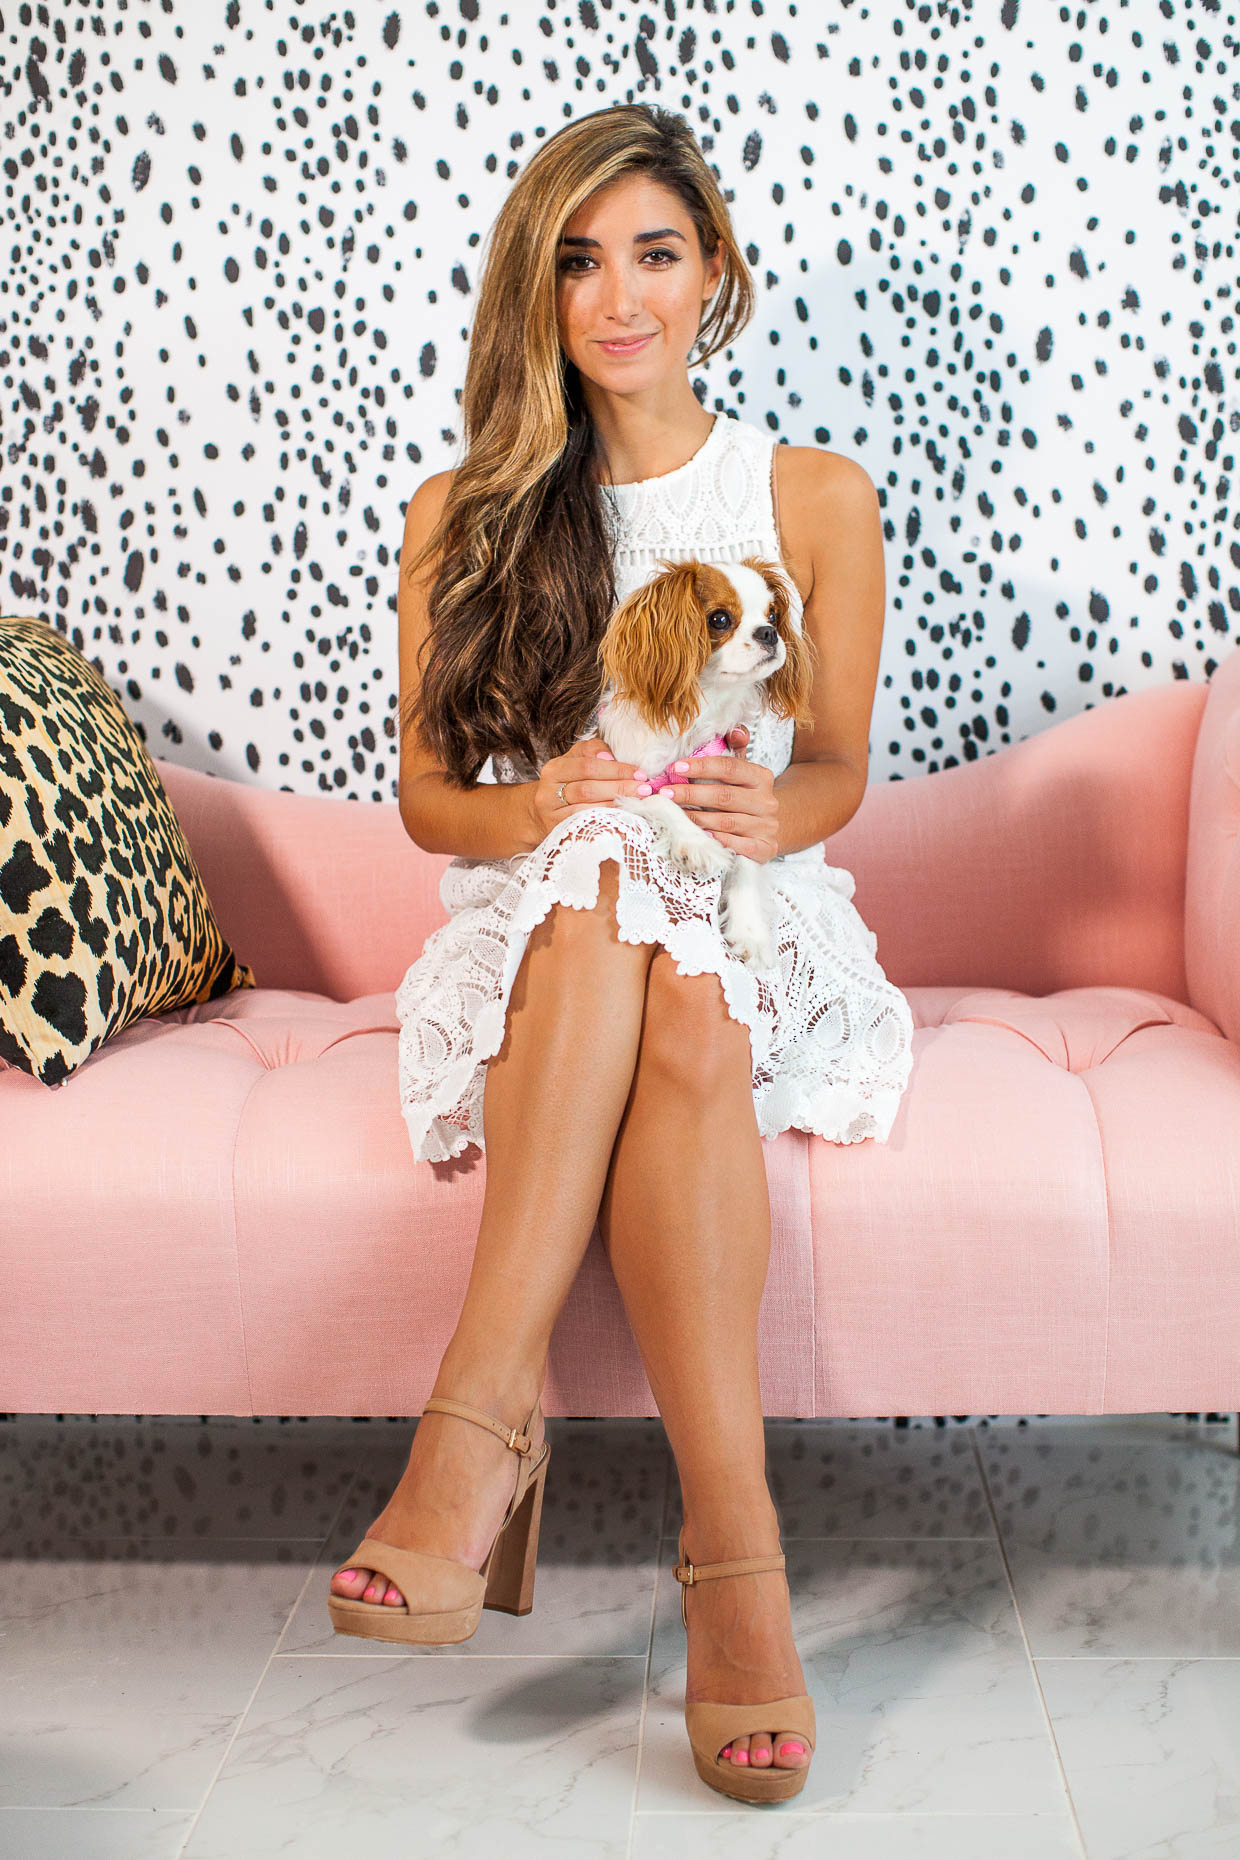 Fashion Blogger The Darling Detail is wearing a J.O.A. Lattice Embroidered Midi Dress and Vince Camuto 'Krysta' Platform Sandals, sitting on a One Kings Lane Cameron Tufted Chaise against a backdrop of Spoonflower Charcoal Dots Wallpaper.